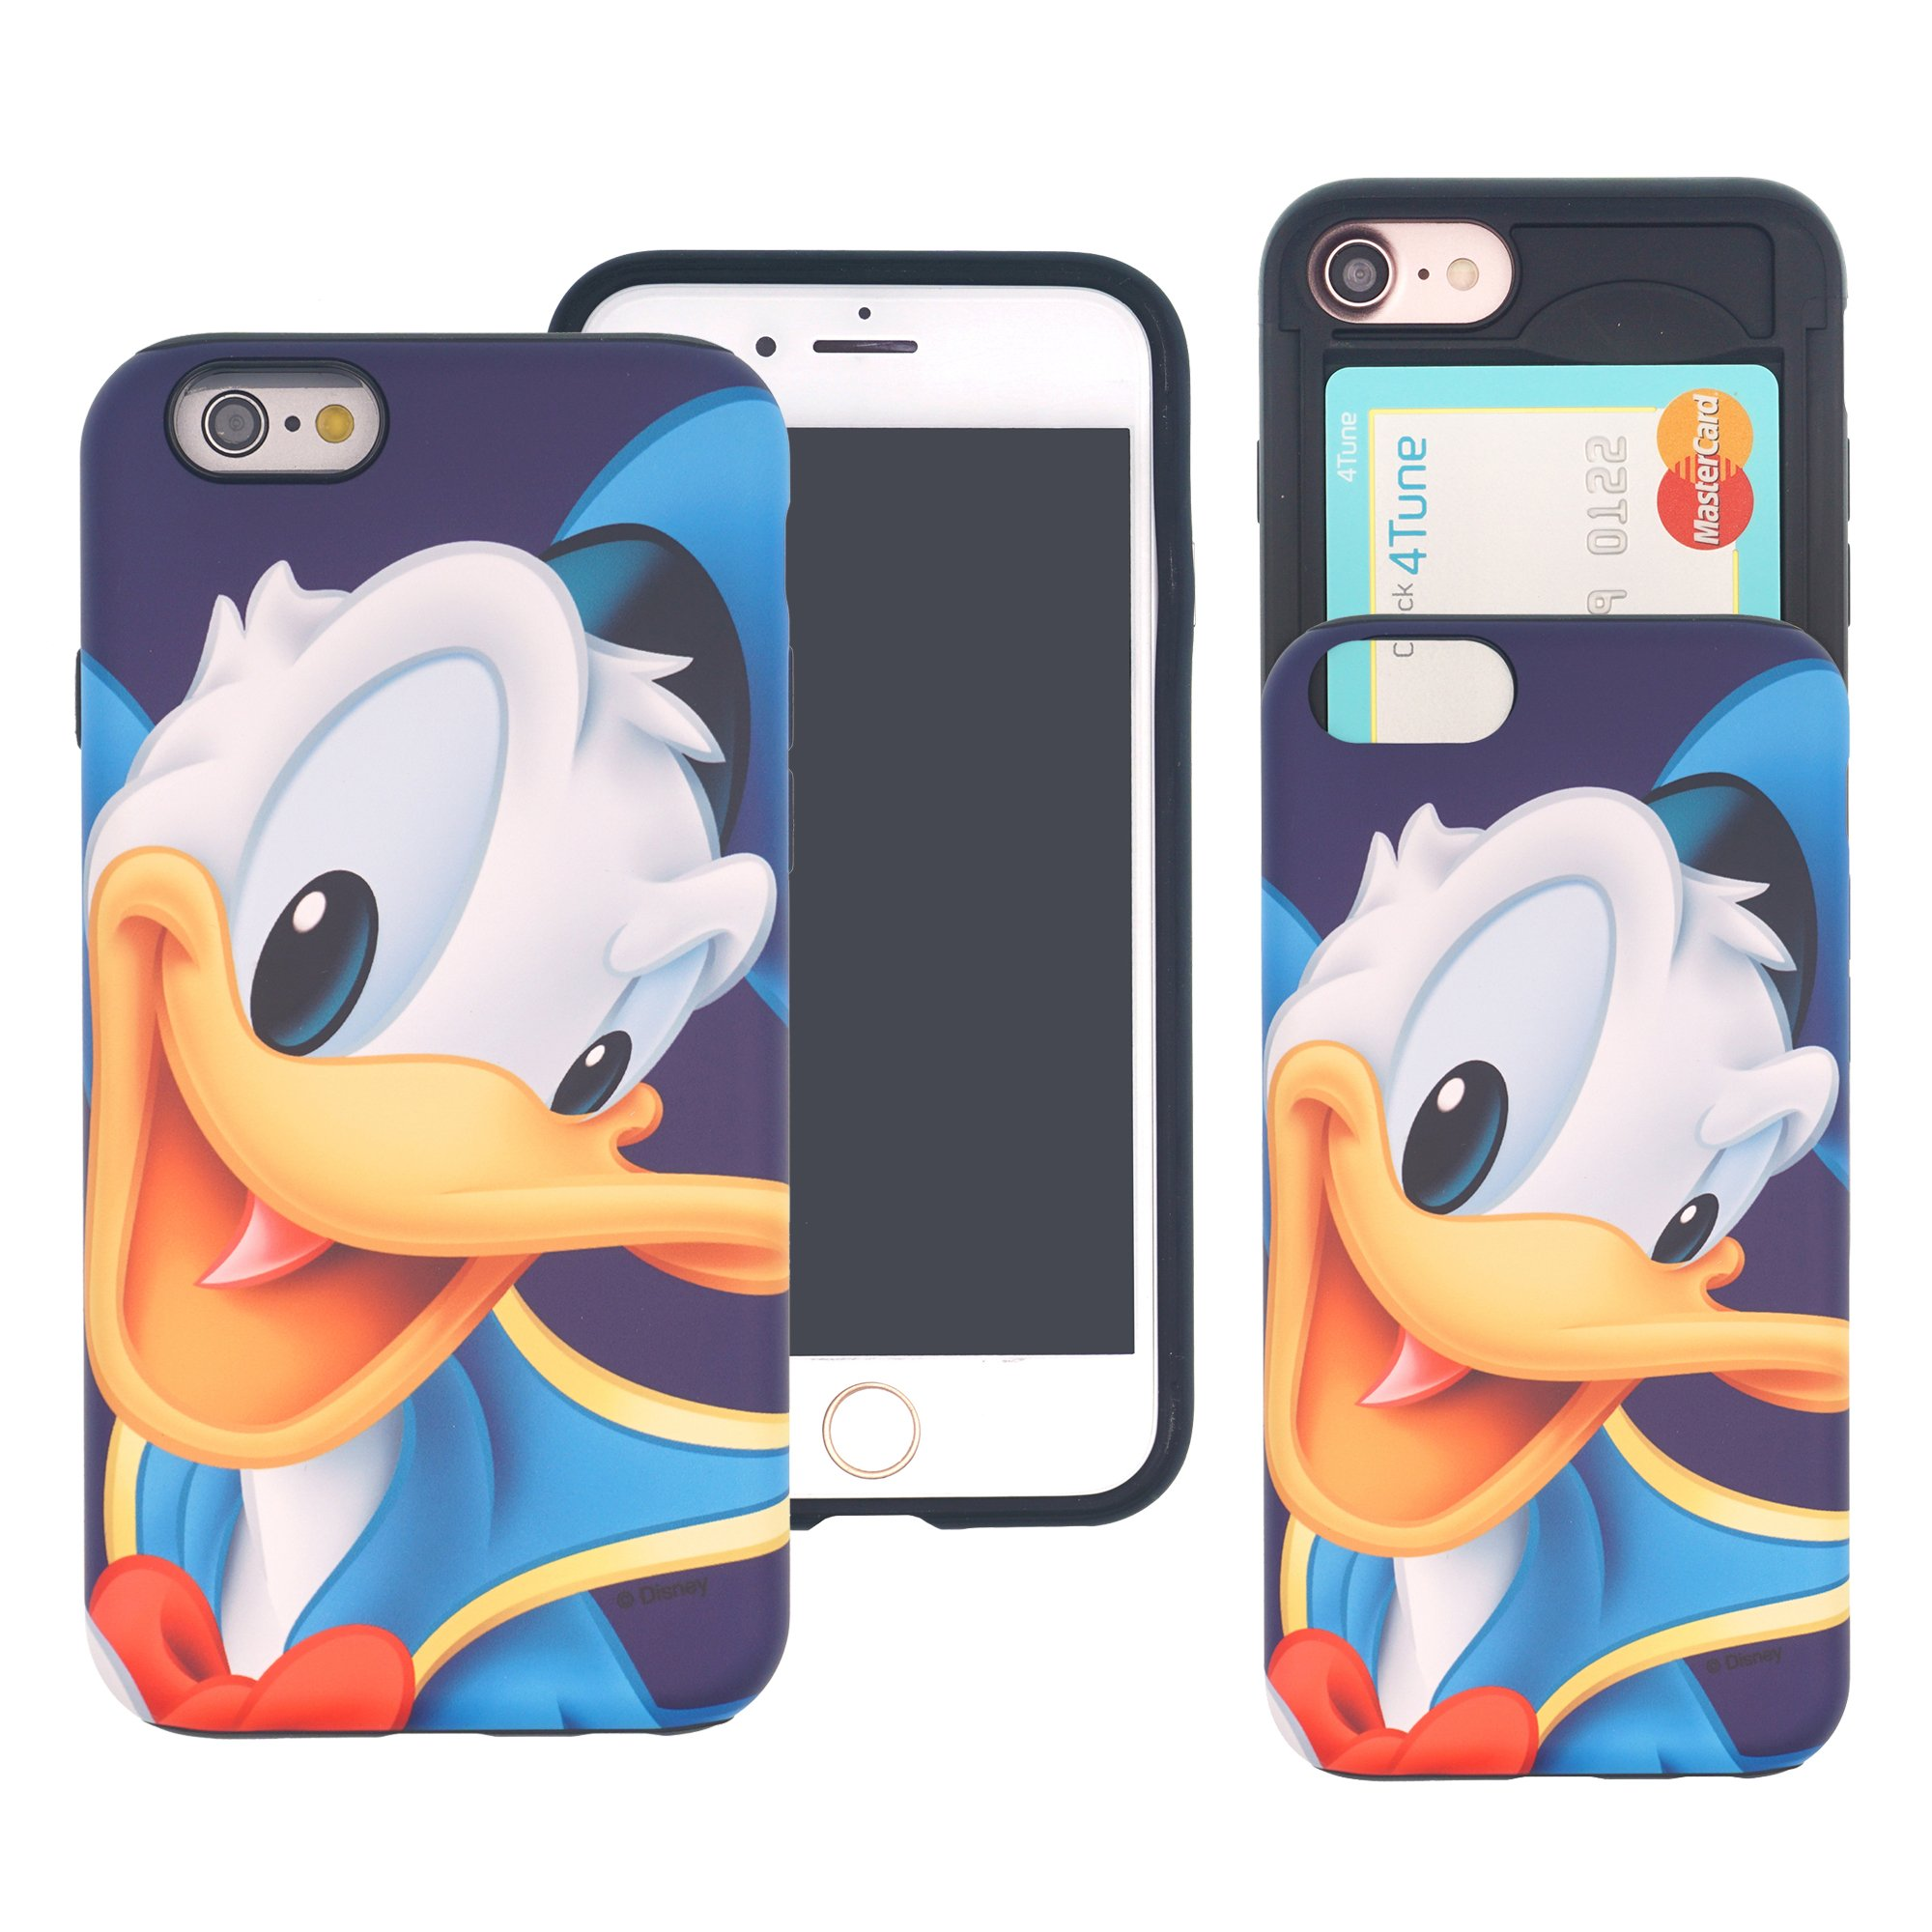 iPhone 6S / iPhone 6 Case DISNEY Cute Slim Slider Cover : Card Slot Shock Absorption Shockproof Dual Layer Protective Holder Bumper for iPhone6S / iPhone6 (4.7inch) Case - Smile Donald Duck